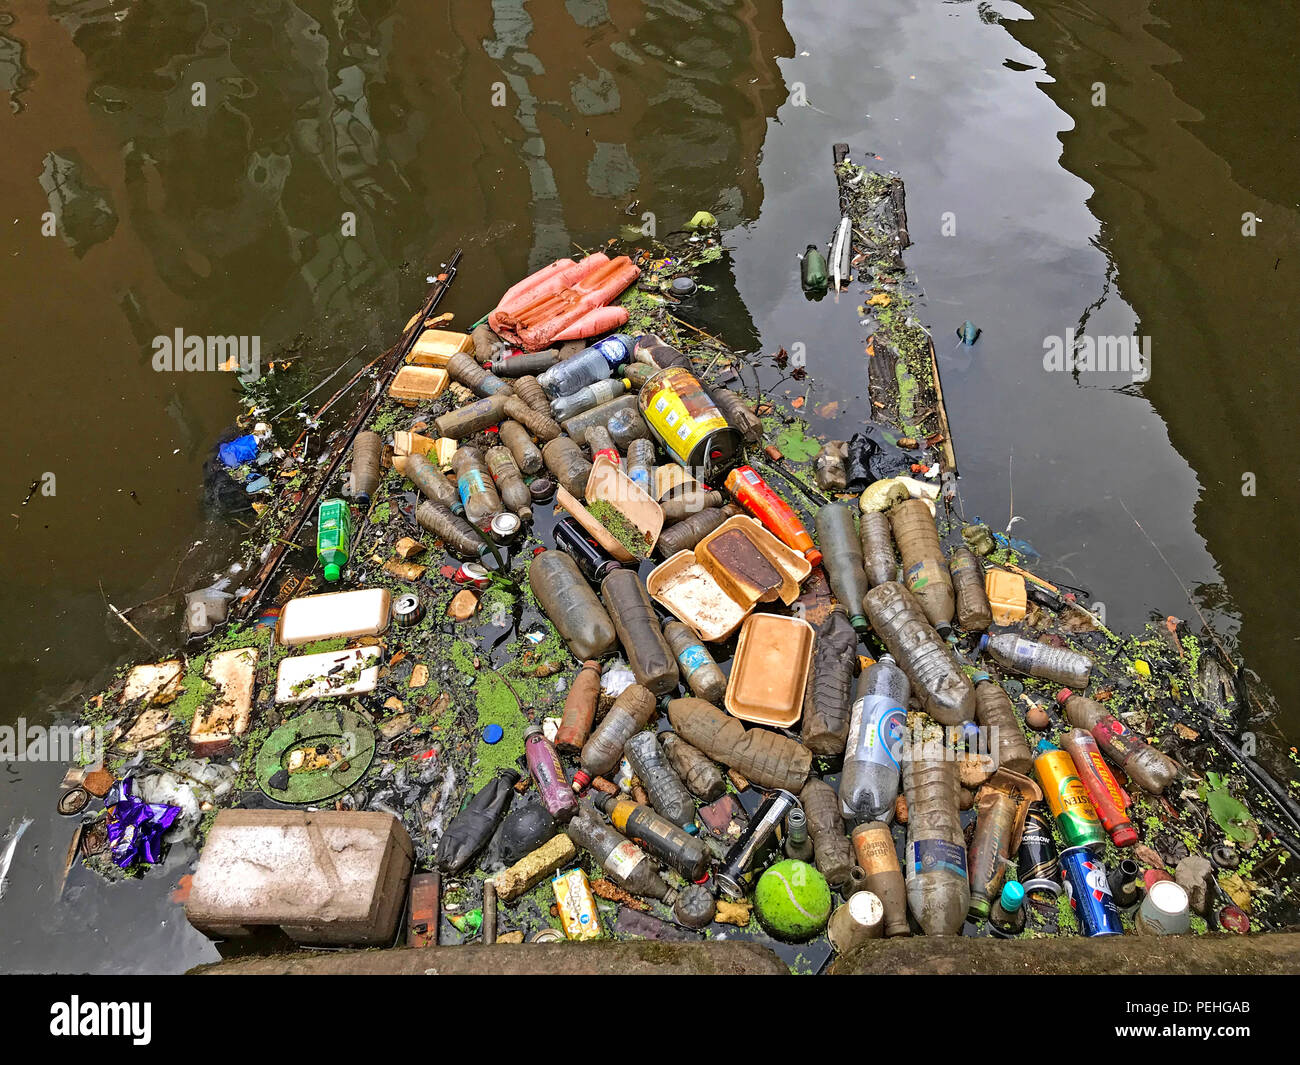 Plastic waste and refuse, in a canal, Castlefields, city centre, Manchester, North West England, UK Stock Photo